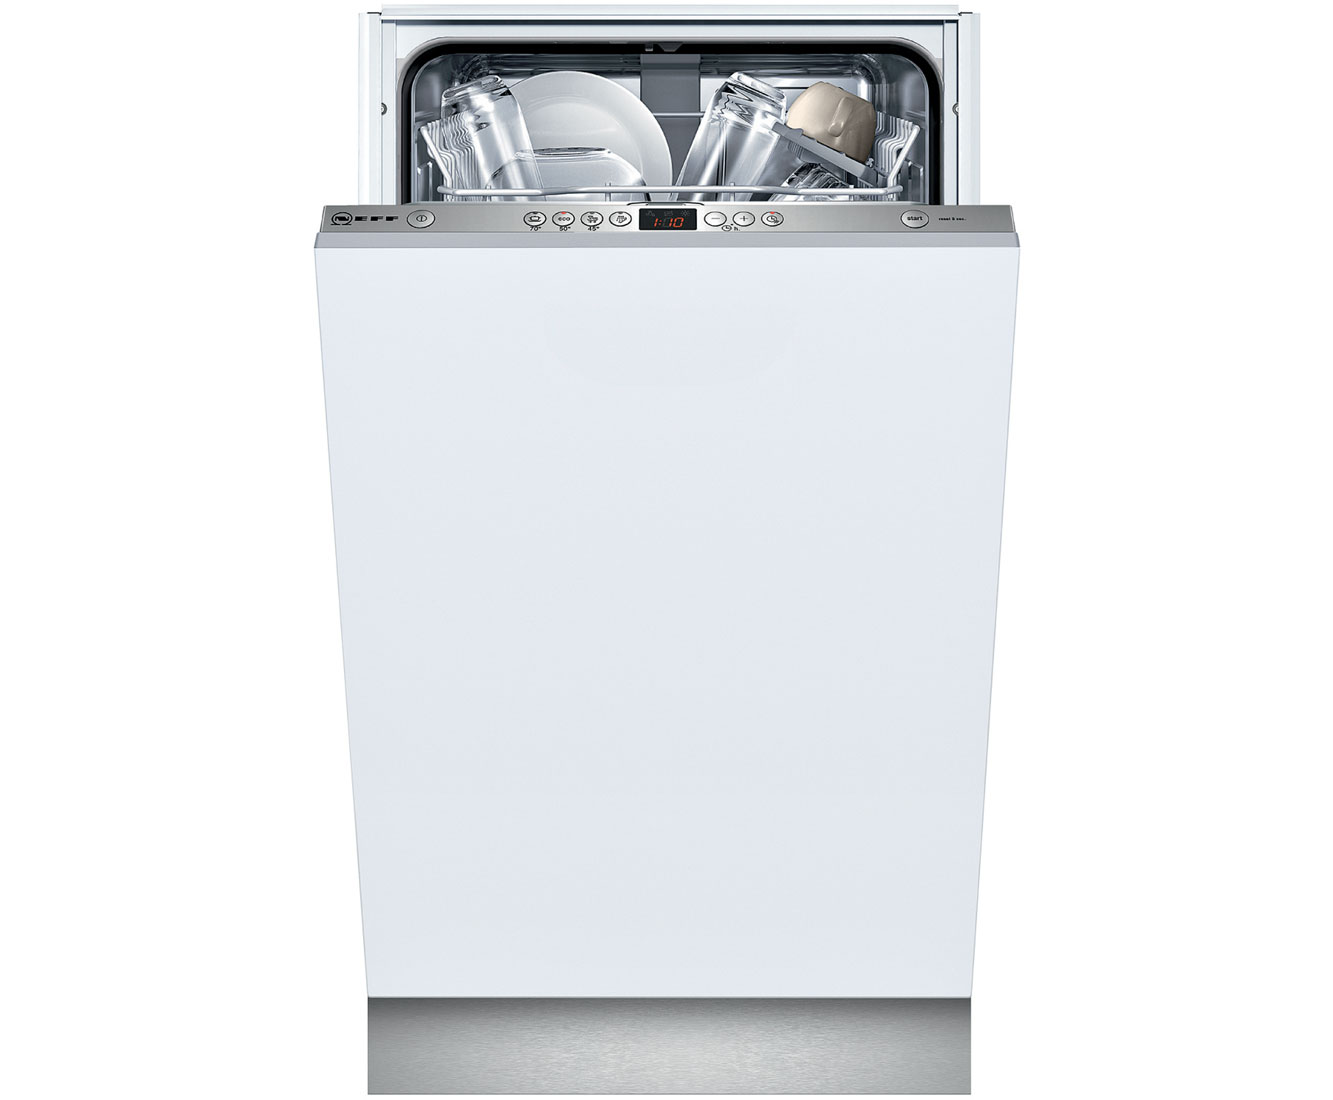 Neff S58M40X0GB Fully Integrated Slimline Dishwasher - Stainless Steel